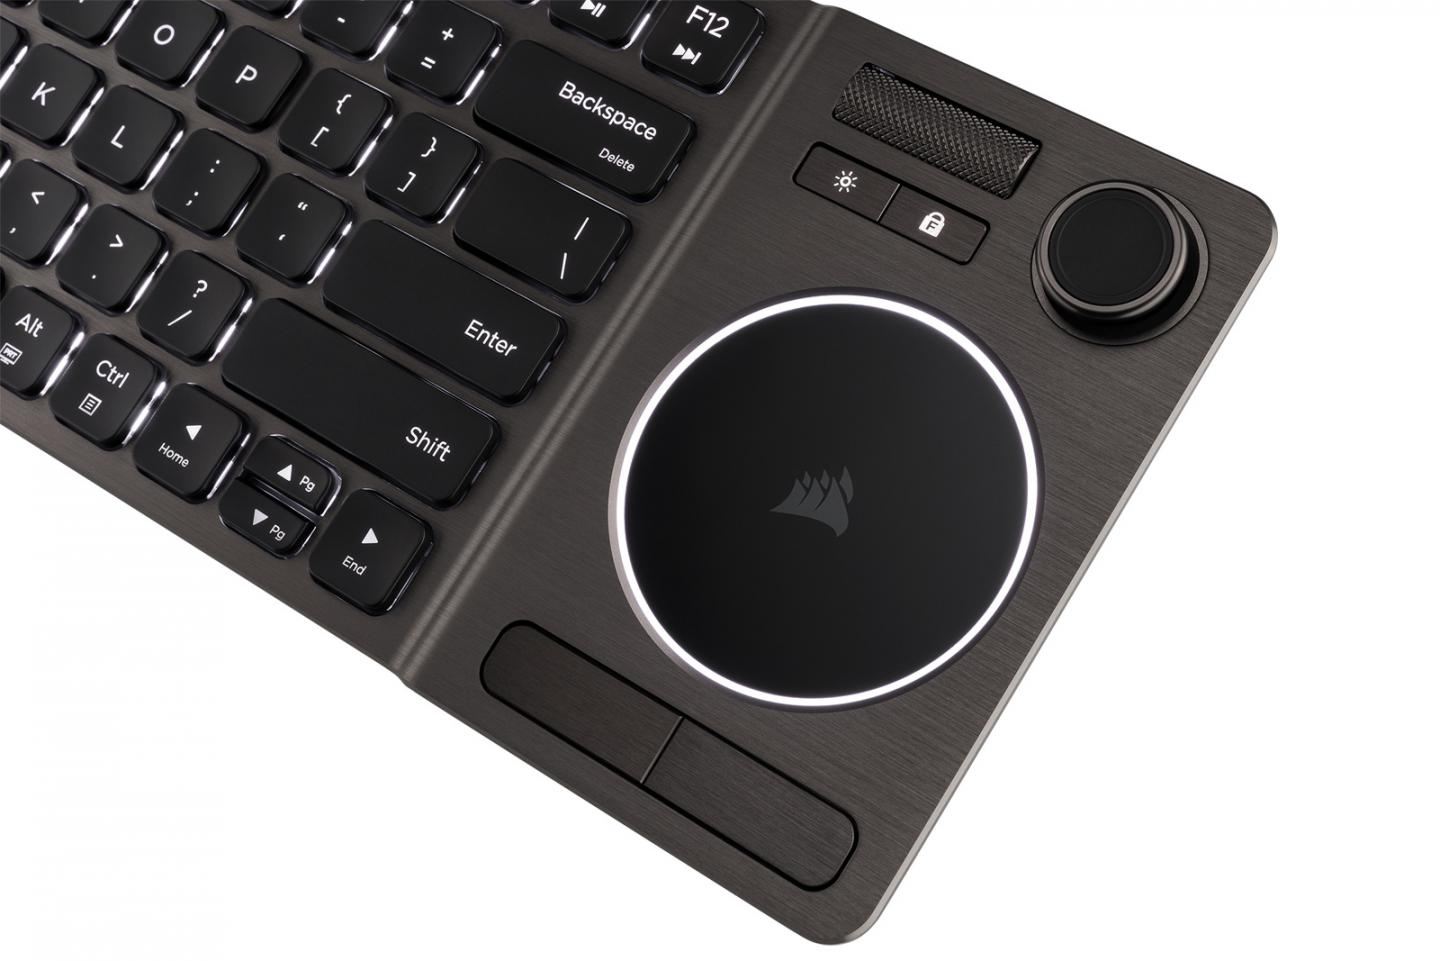 Corsair Lounge Wizard - Introducing the K83 Wireless